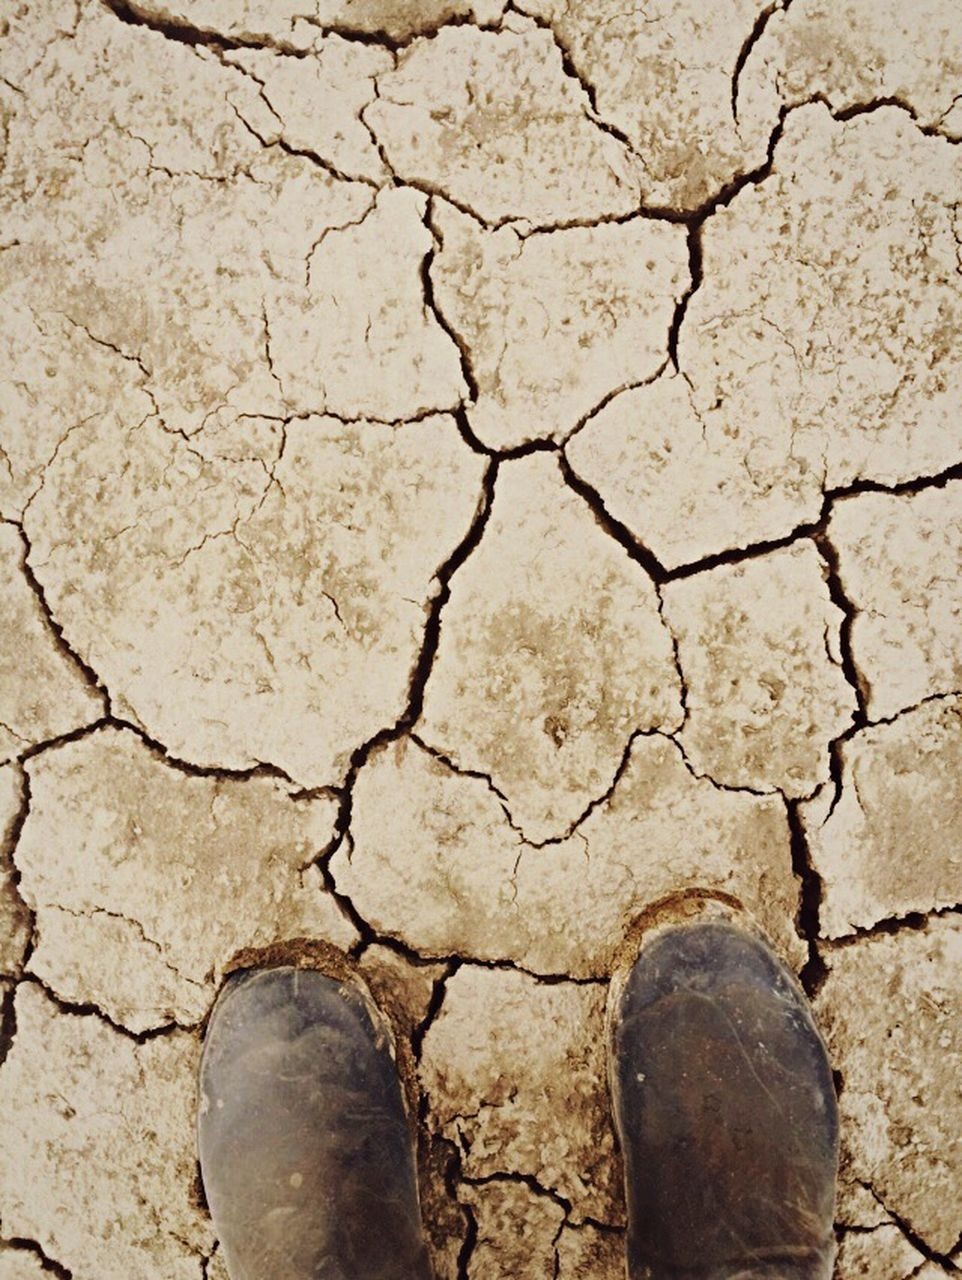 cracked, drought, arid climate, mud, land, barren, global warming, textured, human body part, directly above, environmental issues, bad condition, day, standing, one person, close-up, breaking, nature, outdoors, real people, one man only, people